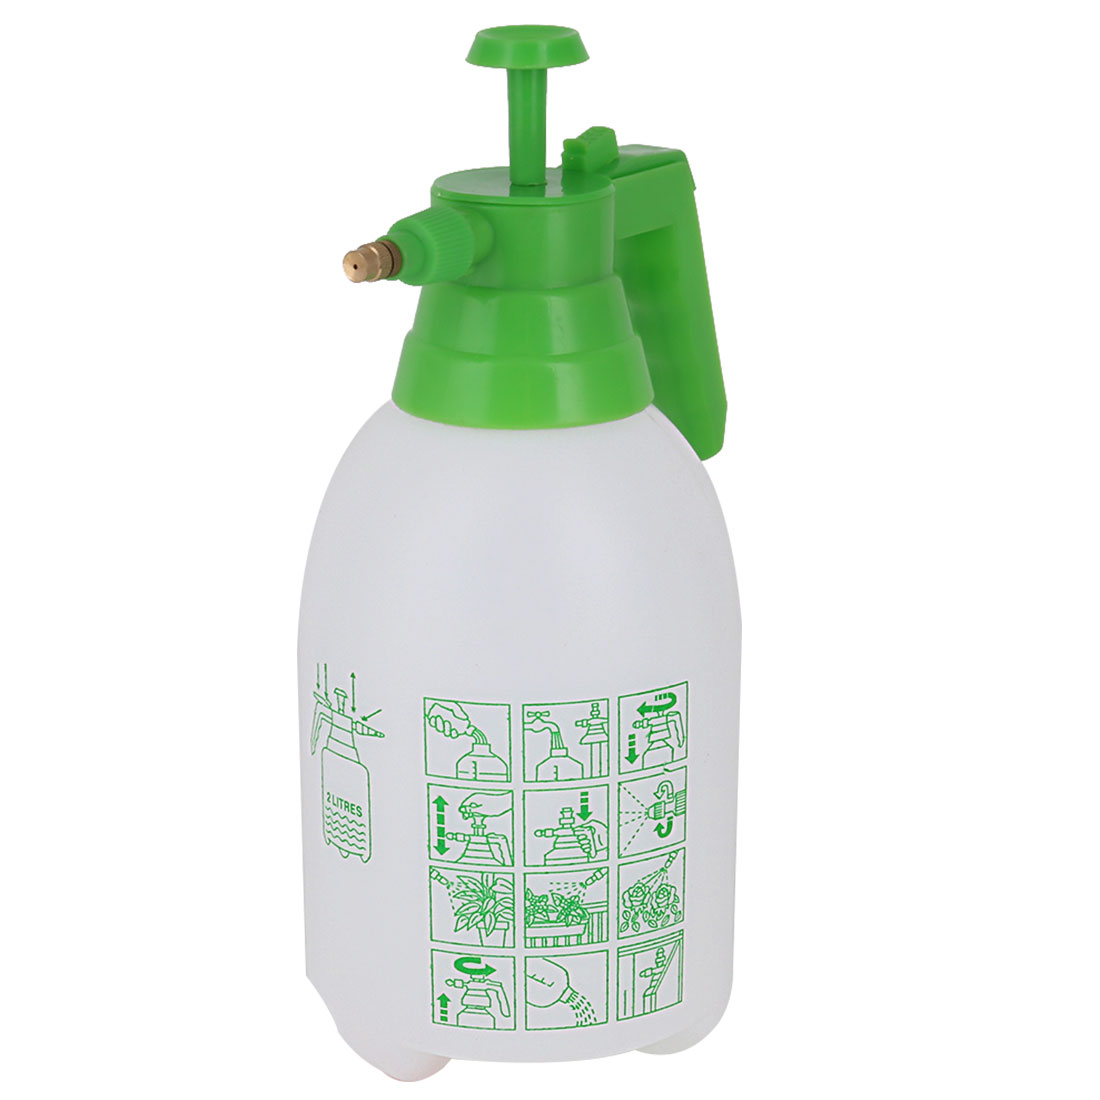 Garden Yard Plastic Plant Vegetable Flower Watering Trigger Spray Bottle Green White 2L